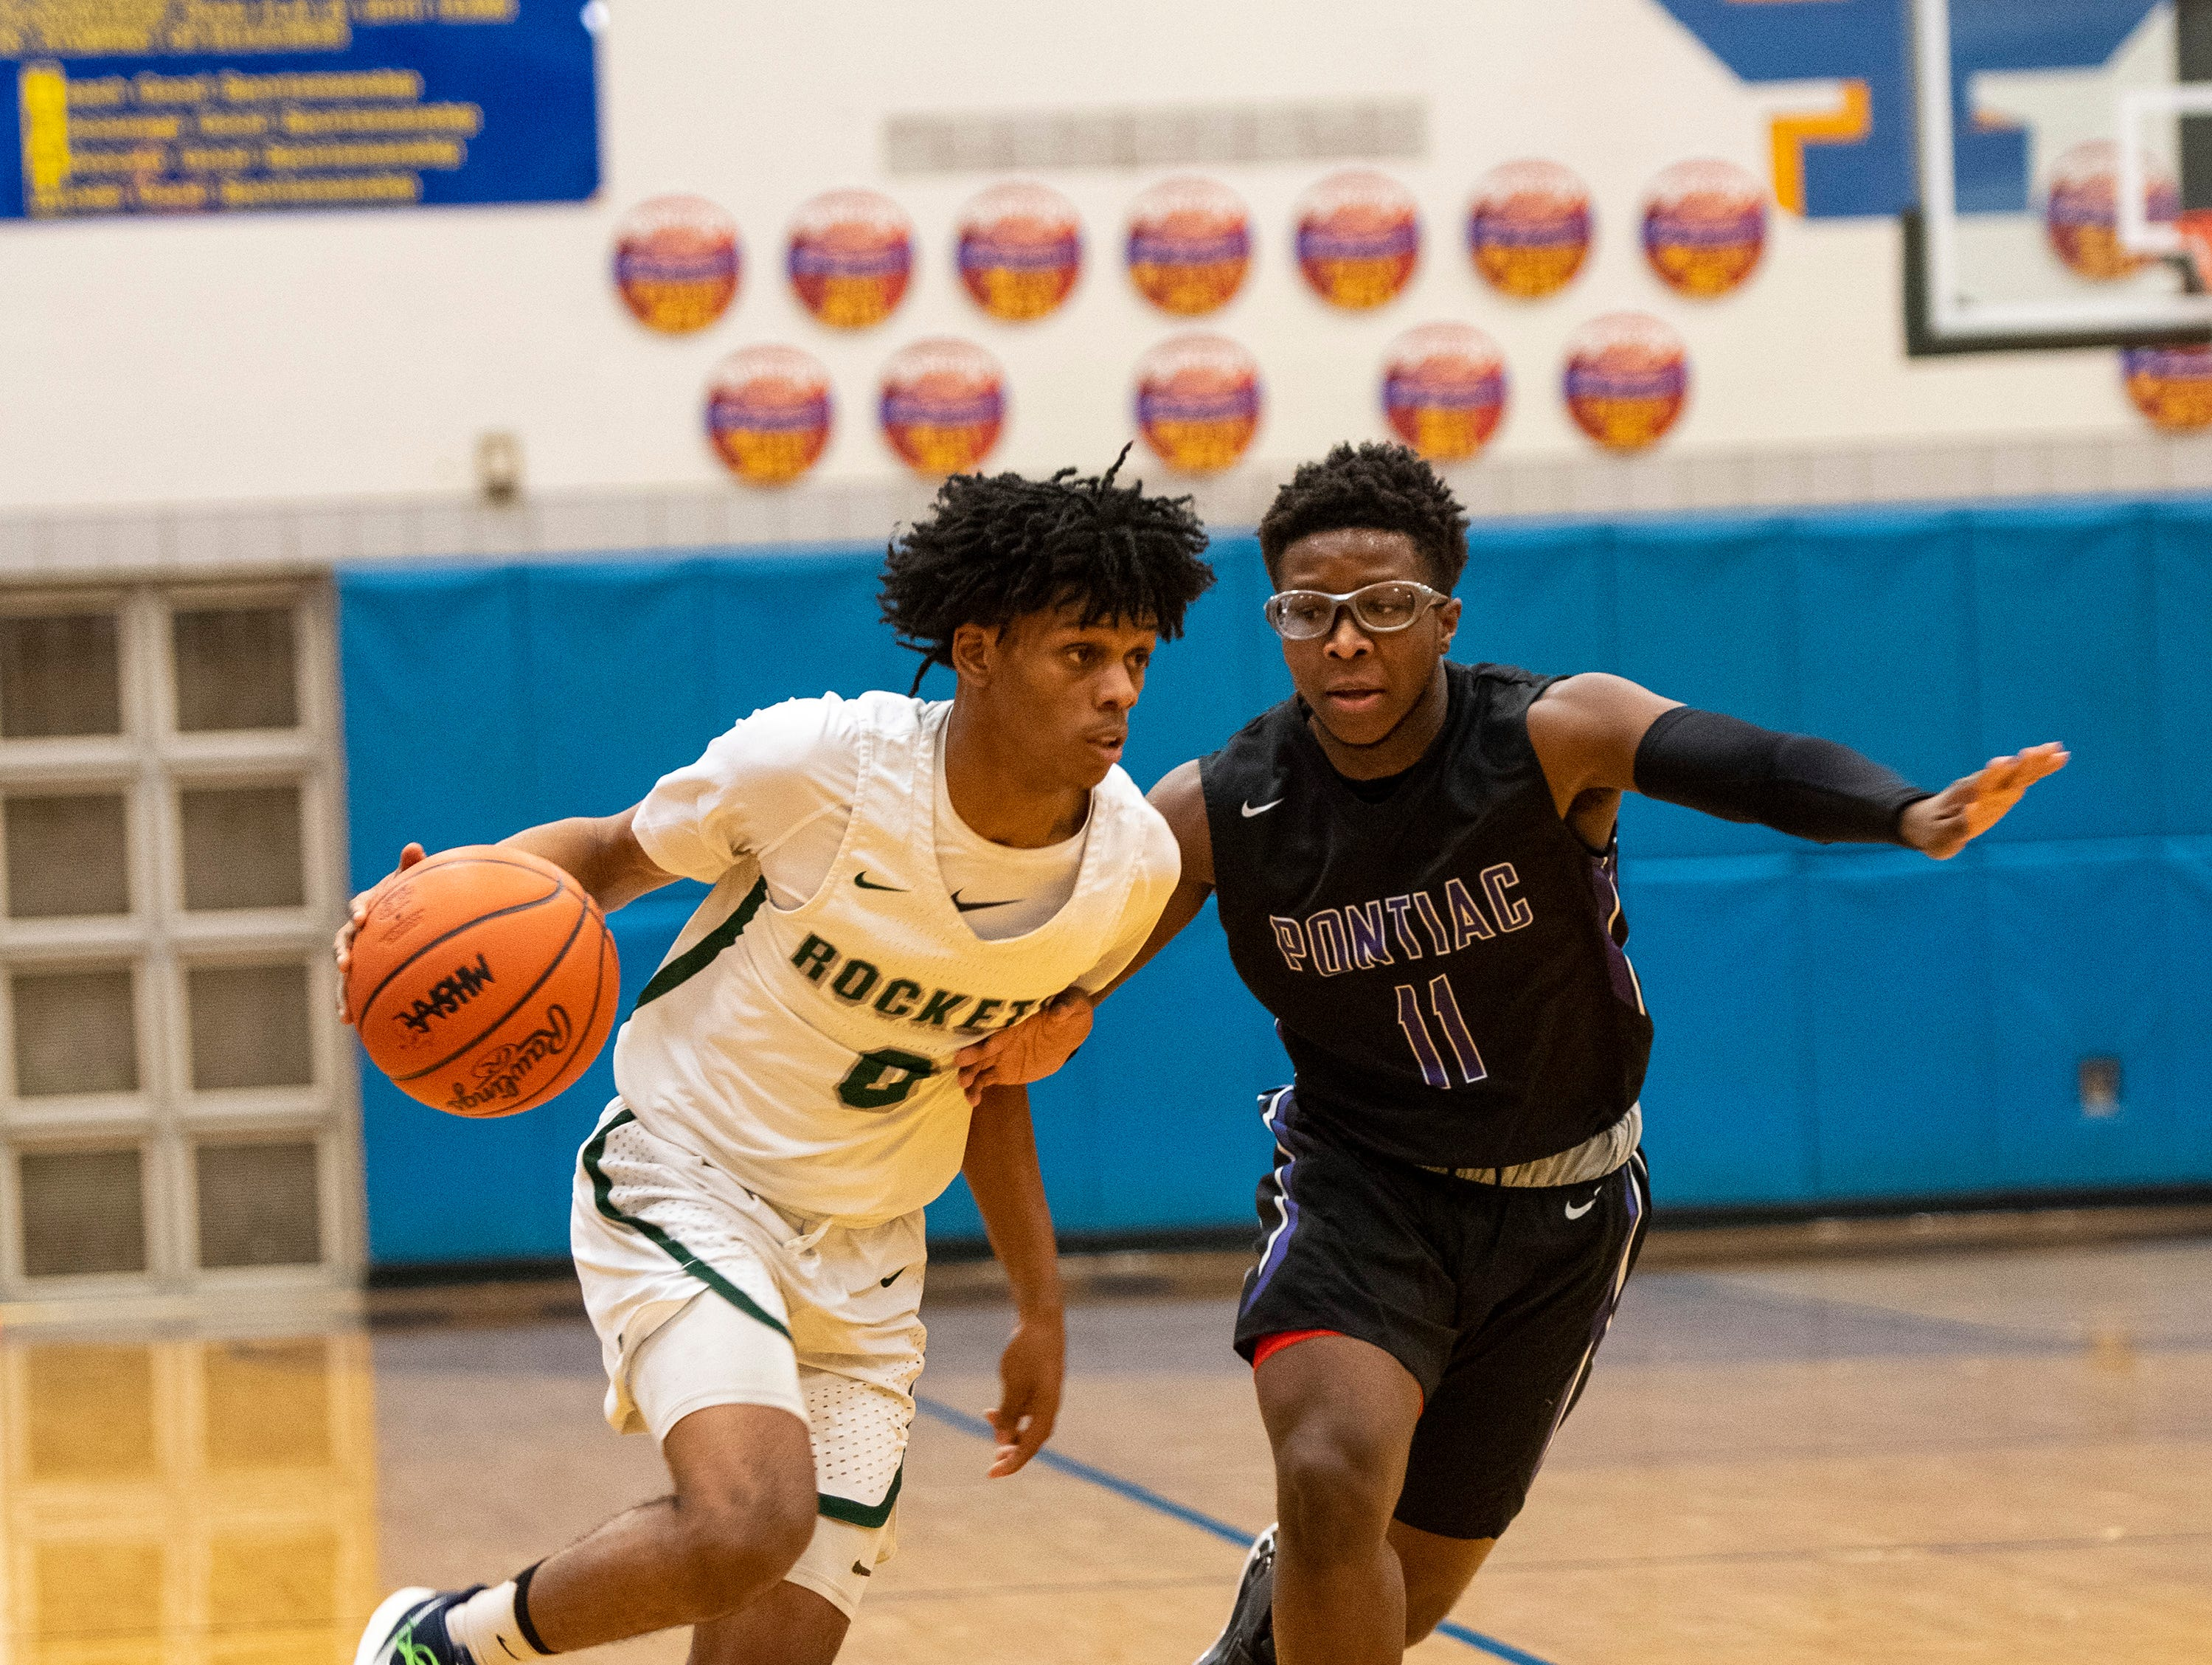 Pontiac HIgh School's Keyshaun Shelmonson-Bey (11) defends against New Haven's Ronald Jeffery III in the MHSAA Division 2 regional basketball finals Thursday, March 7, 2019 at Imlay City High School.